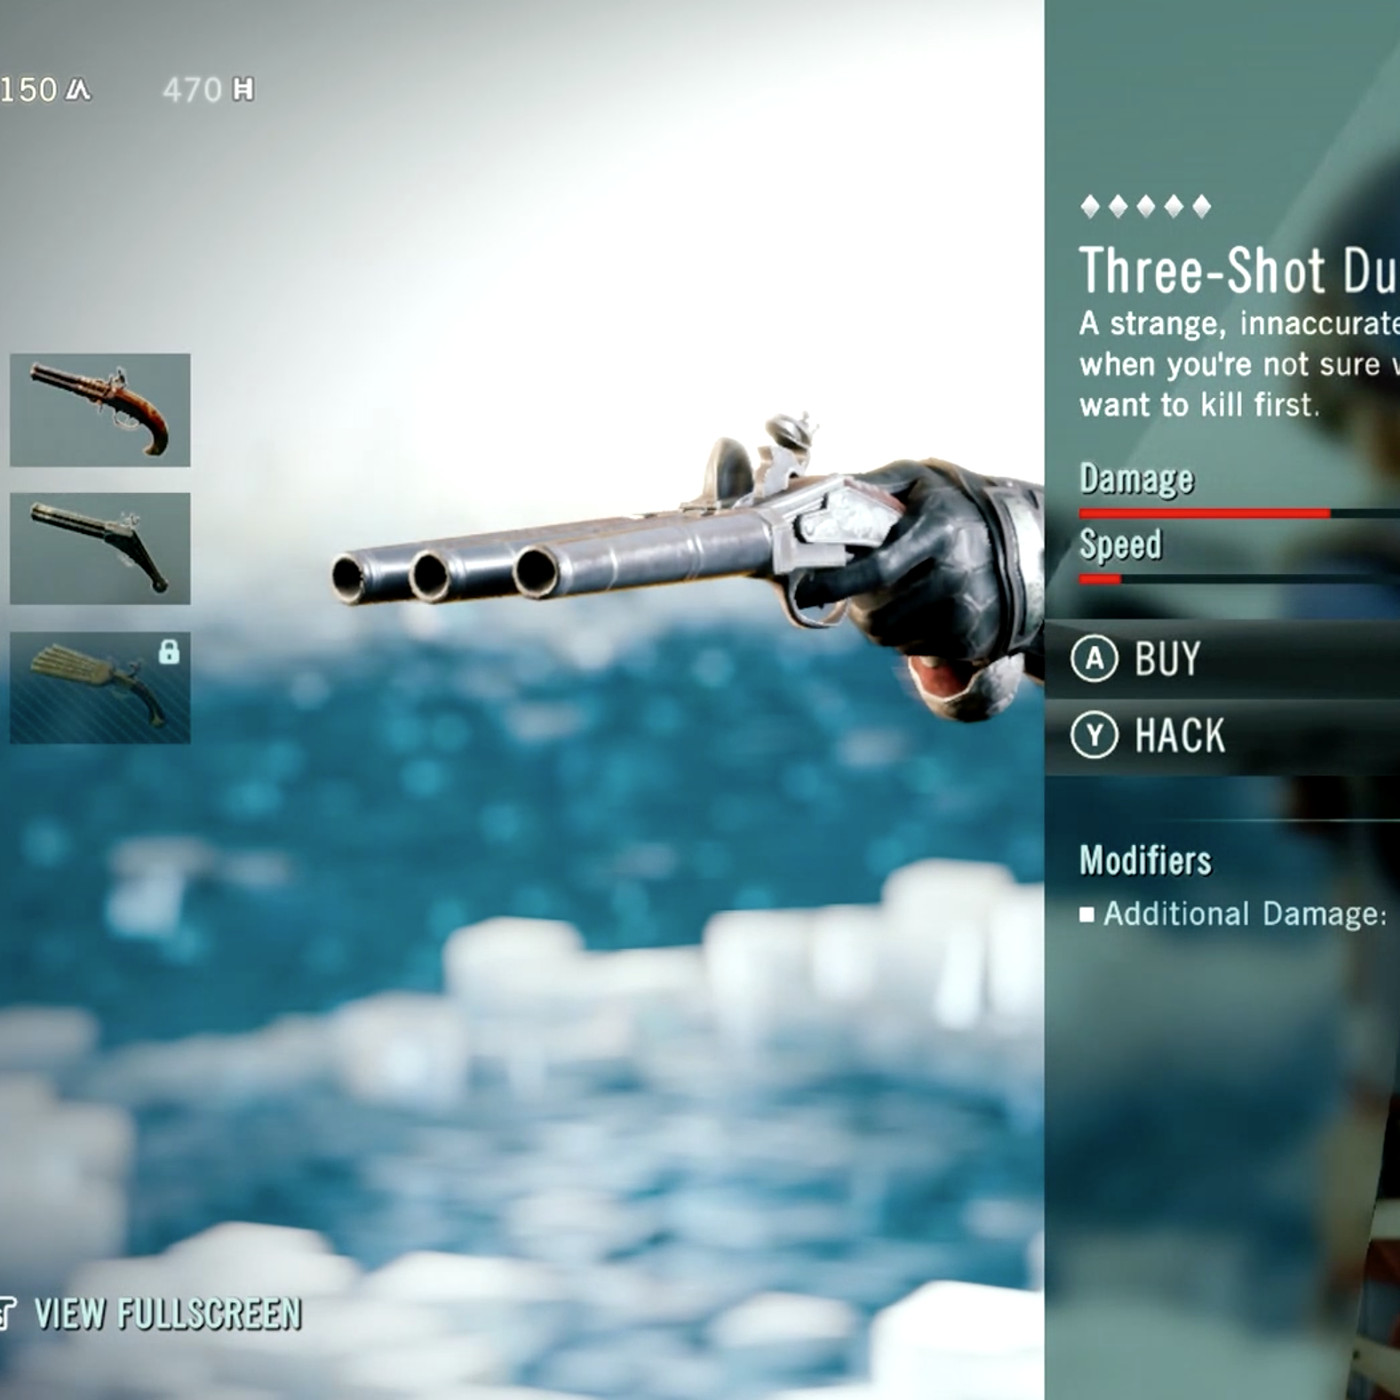 Making sense of Assassin's Creed Unity's four different currencies